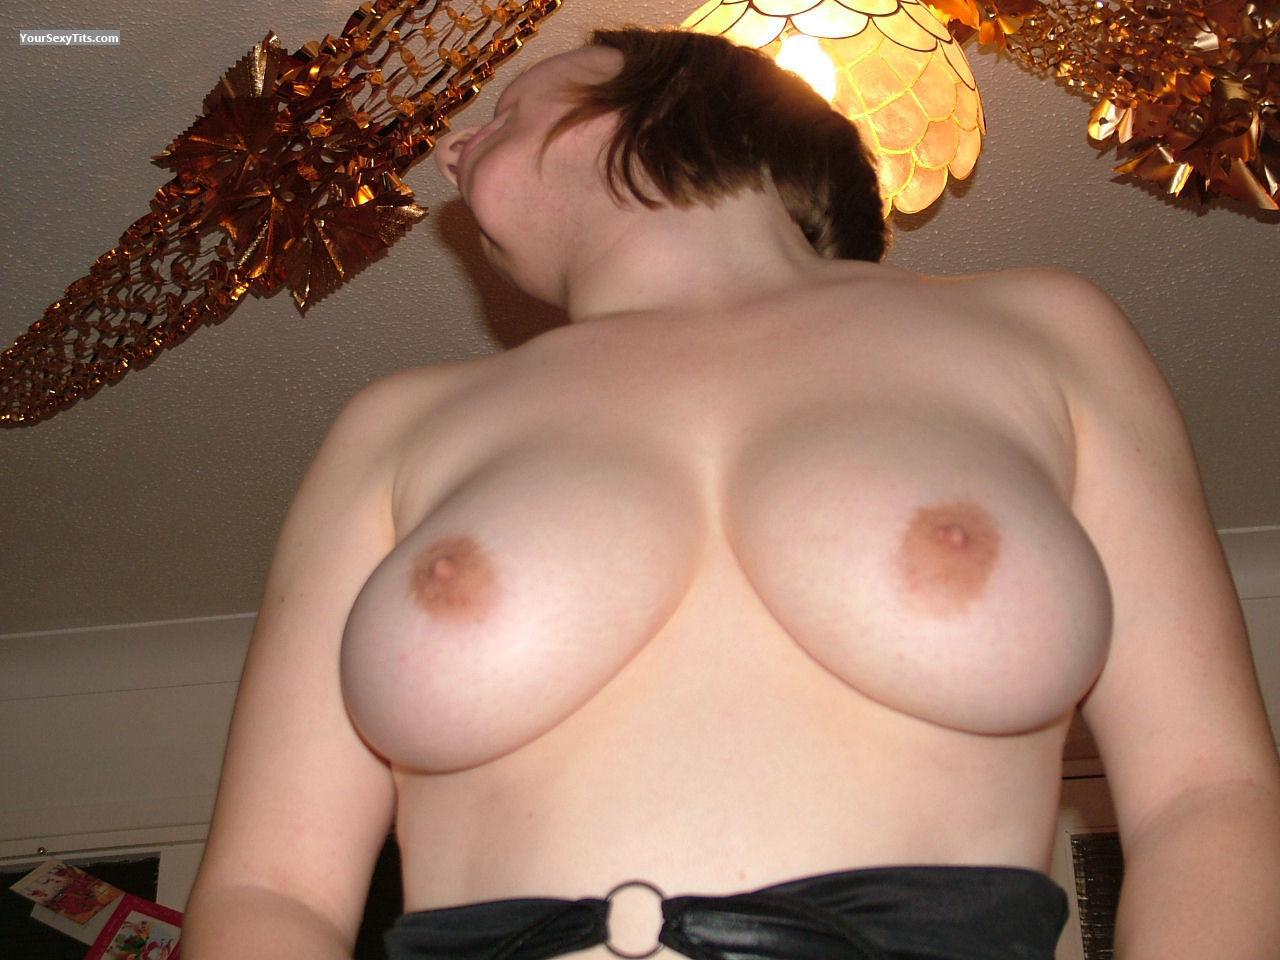 Tit Flash: Big Tits - H from United Kingdom